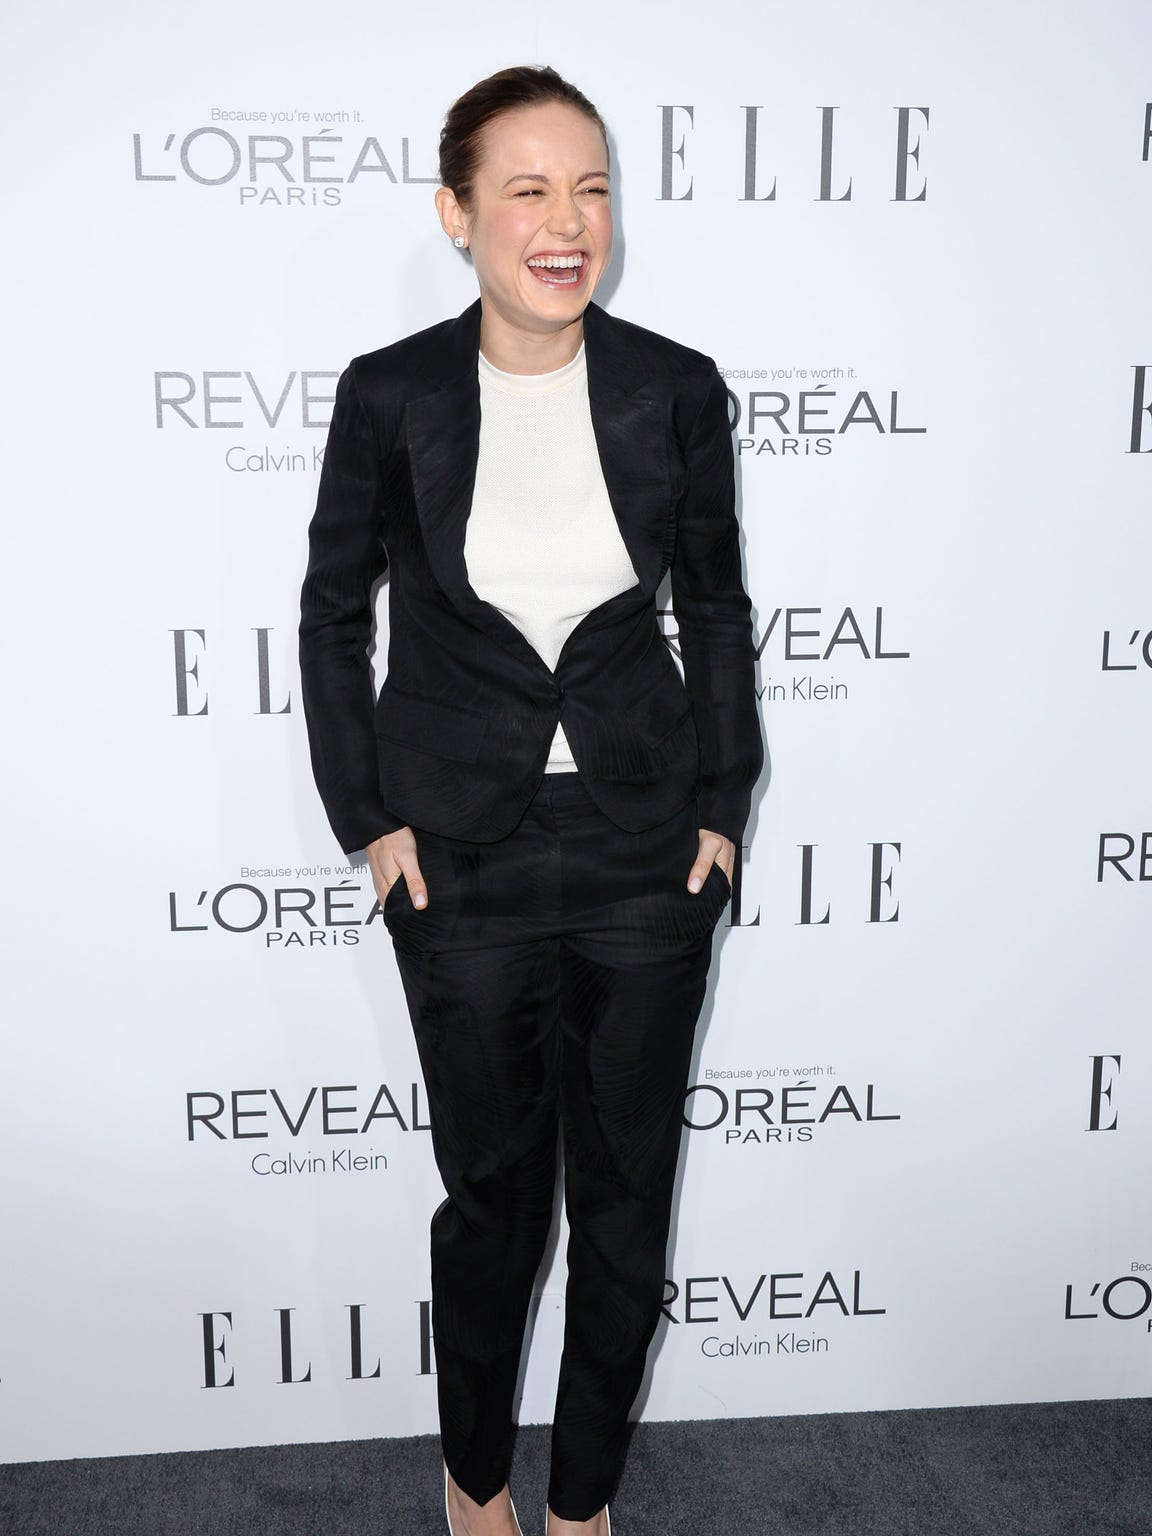 Brie Larson arrives at ELLE's 21st annual Women In Hollywood Awards at the Four Season Hotel on Monday, Oct. 20, 2014, in Los Angeles. (Photo by Jordan Strauss/Invision/AP)